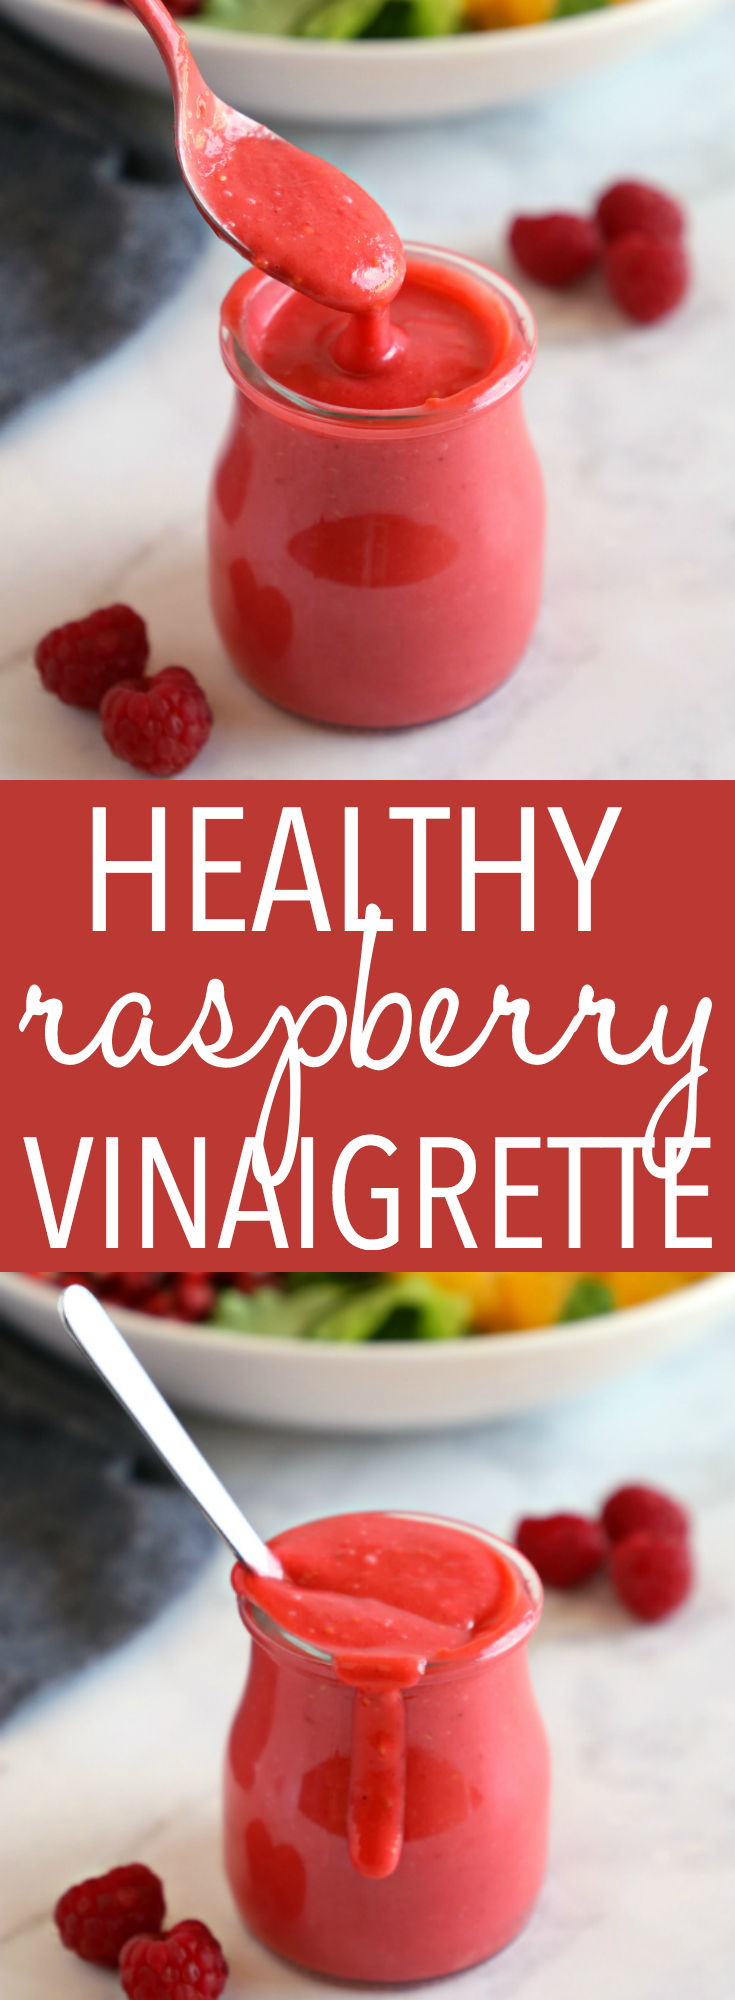 This Healthy Raspberry Vinaigrette Salad Dressing is the perfect addition to any fresh summer salad, and it's made with only 4 simple ingredients! Recipe from thebusybaker.ca! #raspberryvinaigrette #easysaladdressing #homemadevinaigrette via @busybakerblog